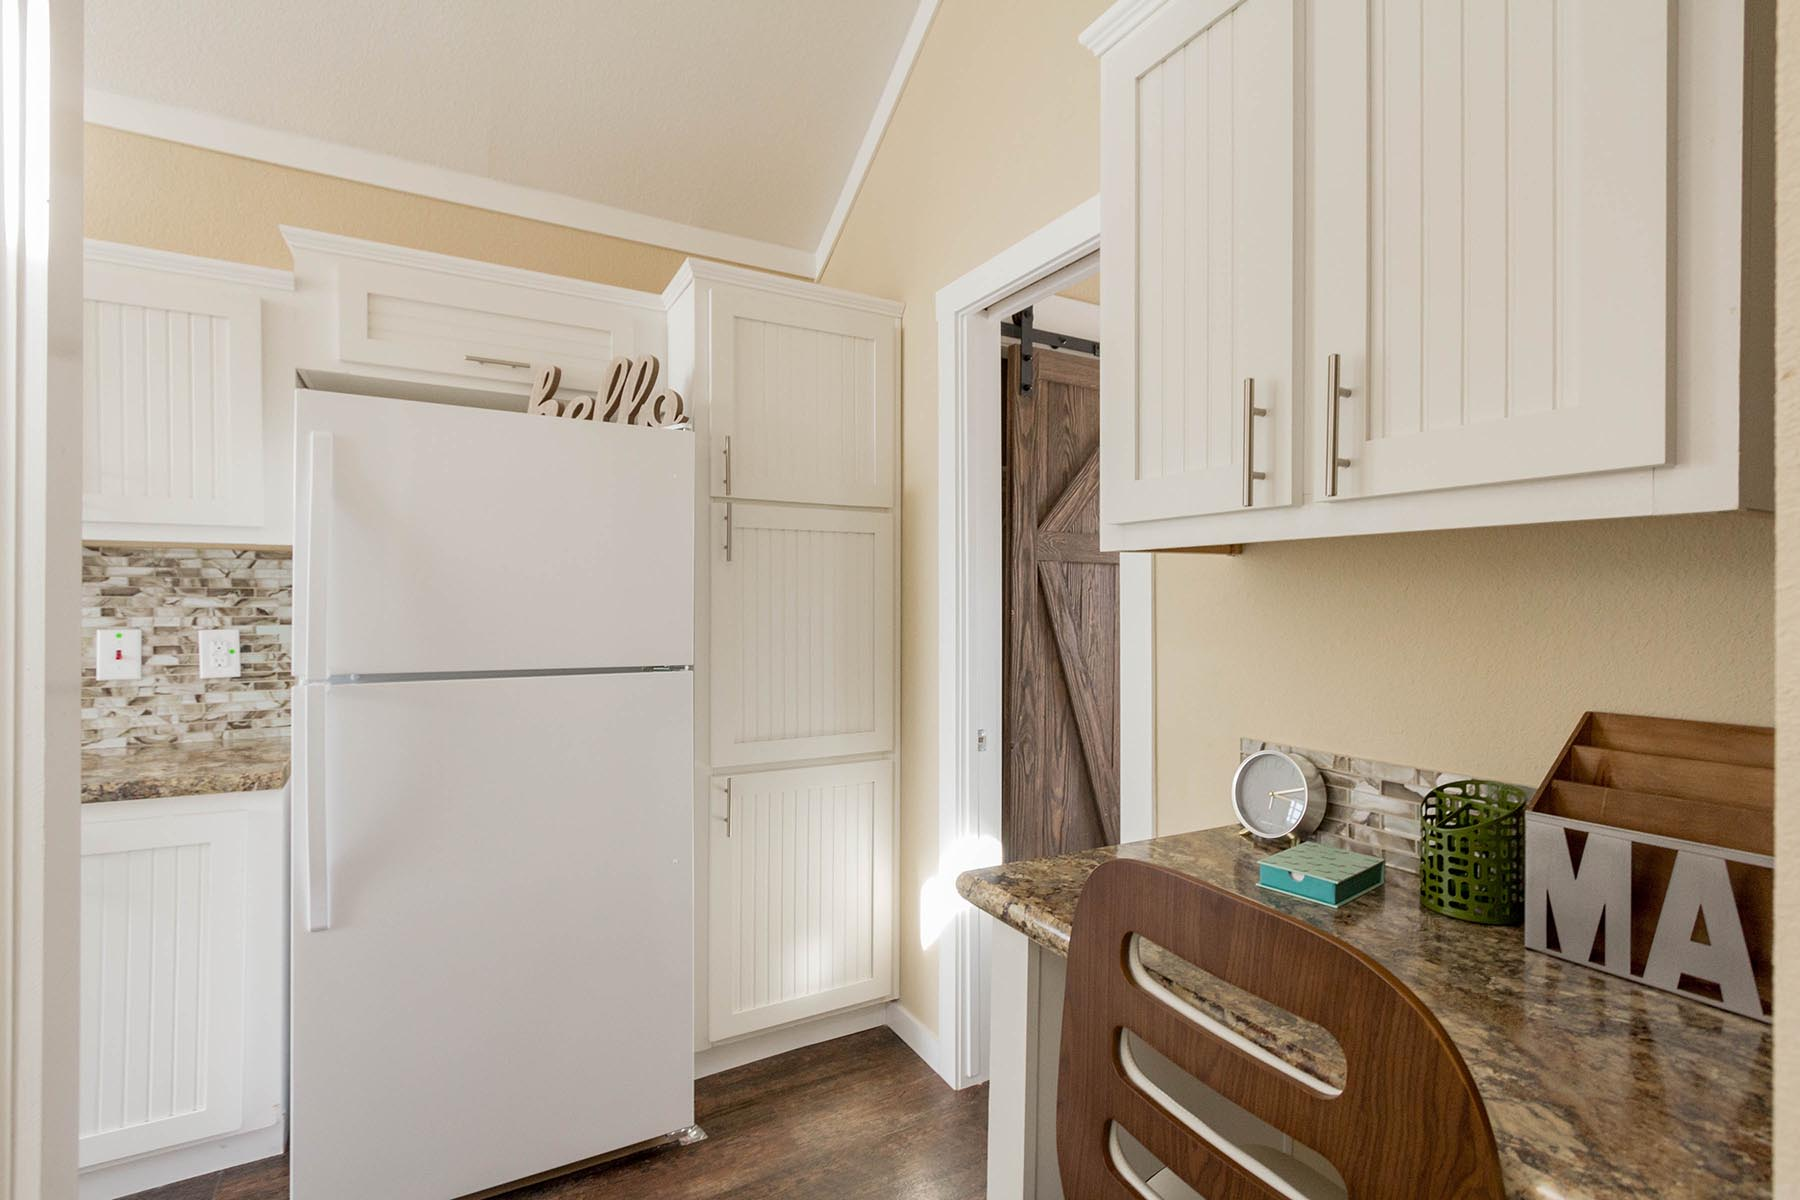 The Malibu APH 505 kitchen